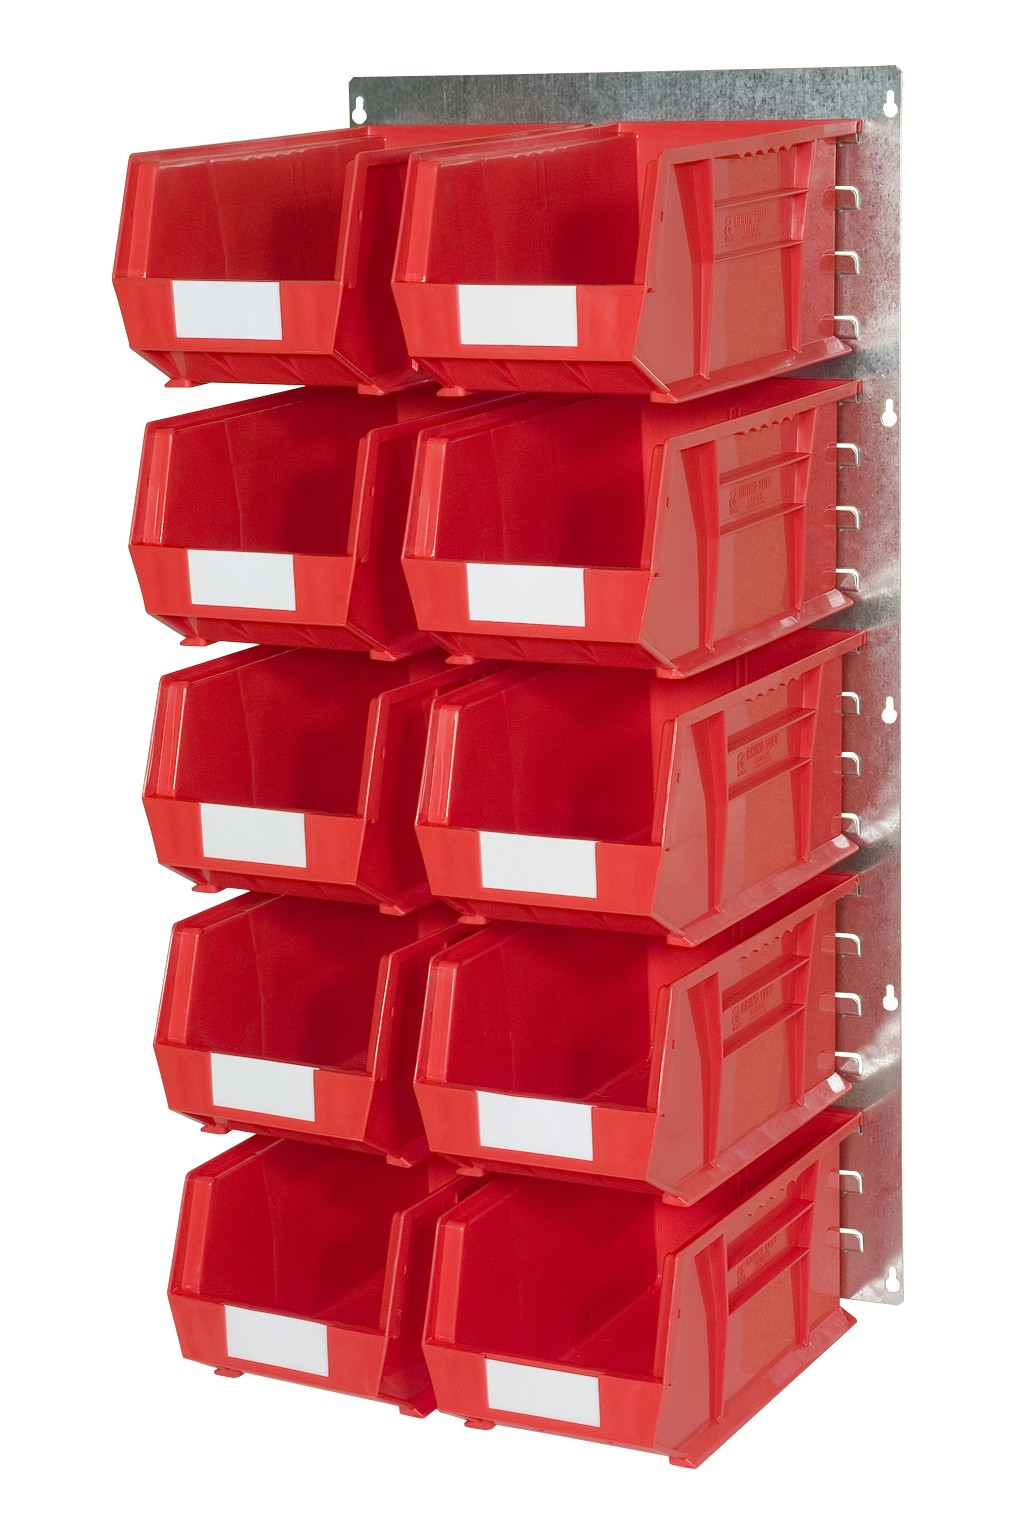 WALL LOUVRE PANELS WITH PLASTIC BINS (HP)